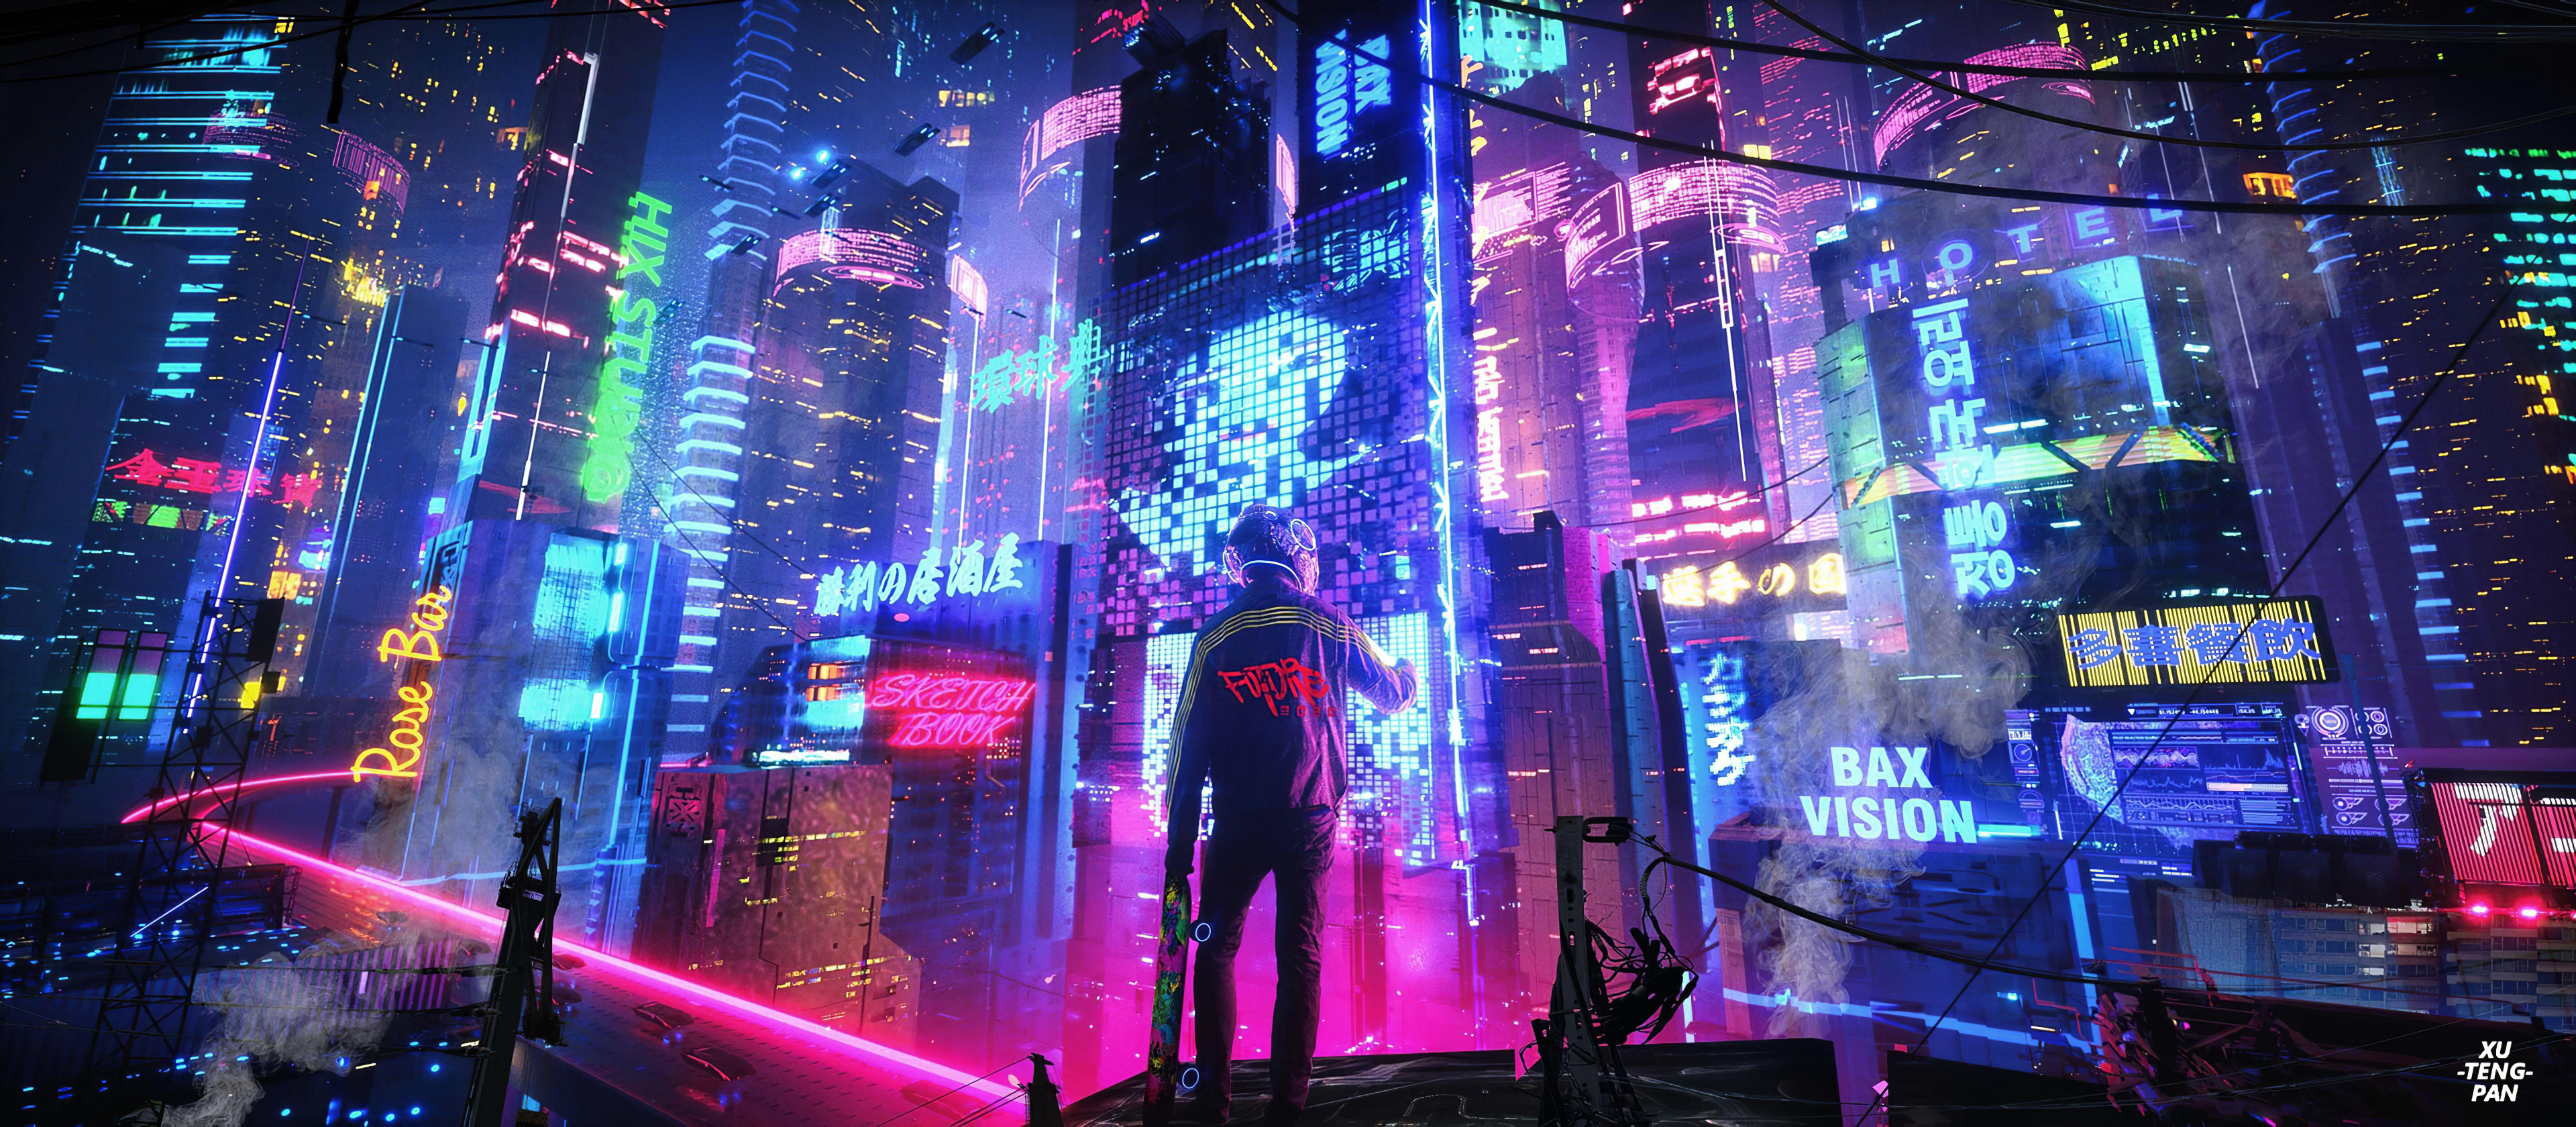 Neon City Pan 4k Hd Artist 4k Wallpapers Images Backgrounds Photos And Pictures